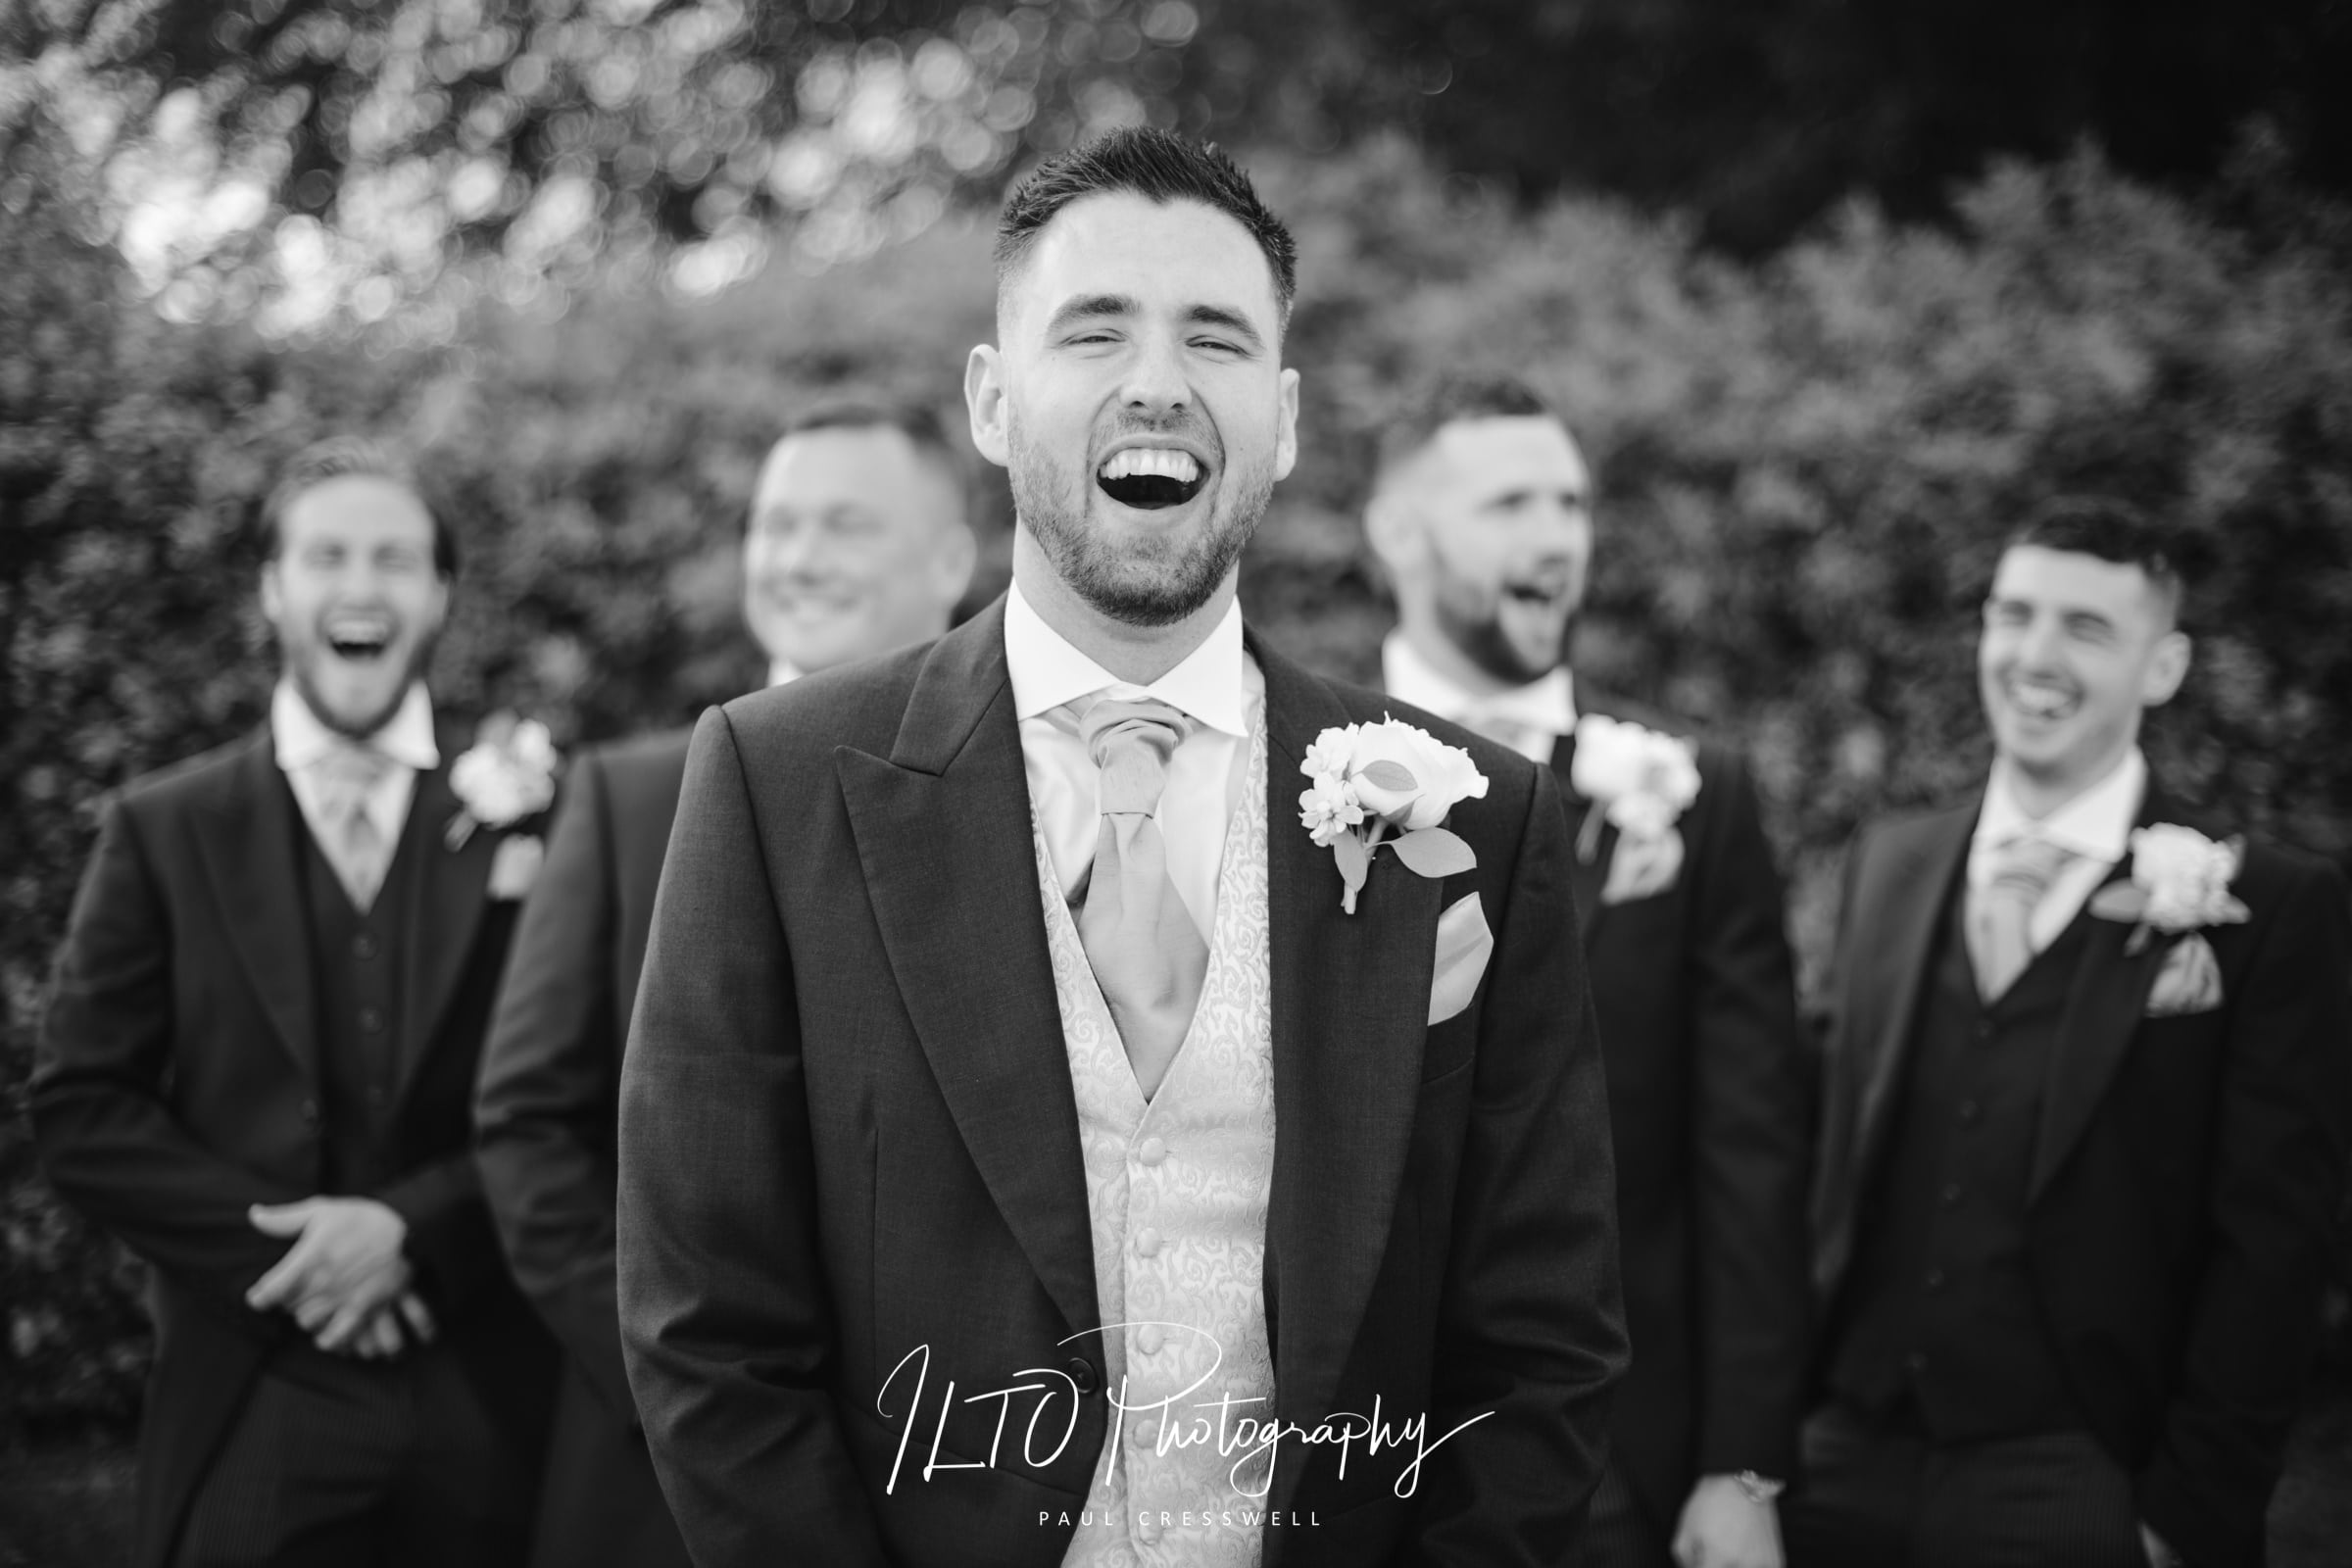 affordable funny Wedding photographer near me sheffield yorkshire leeds